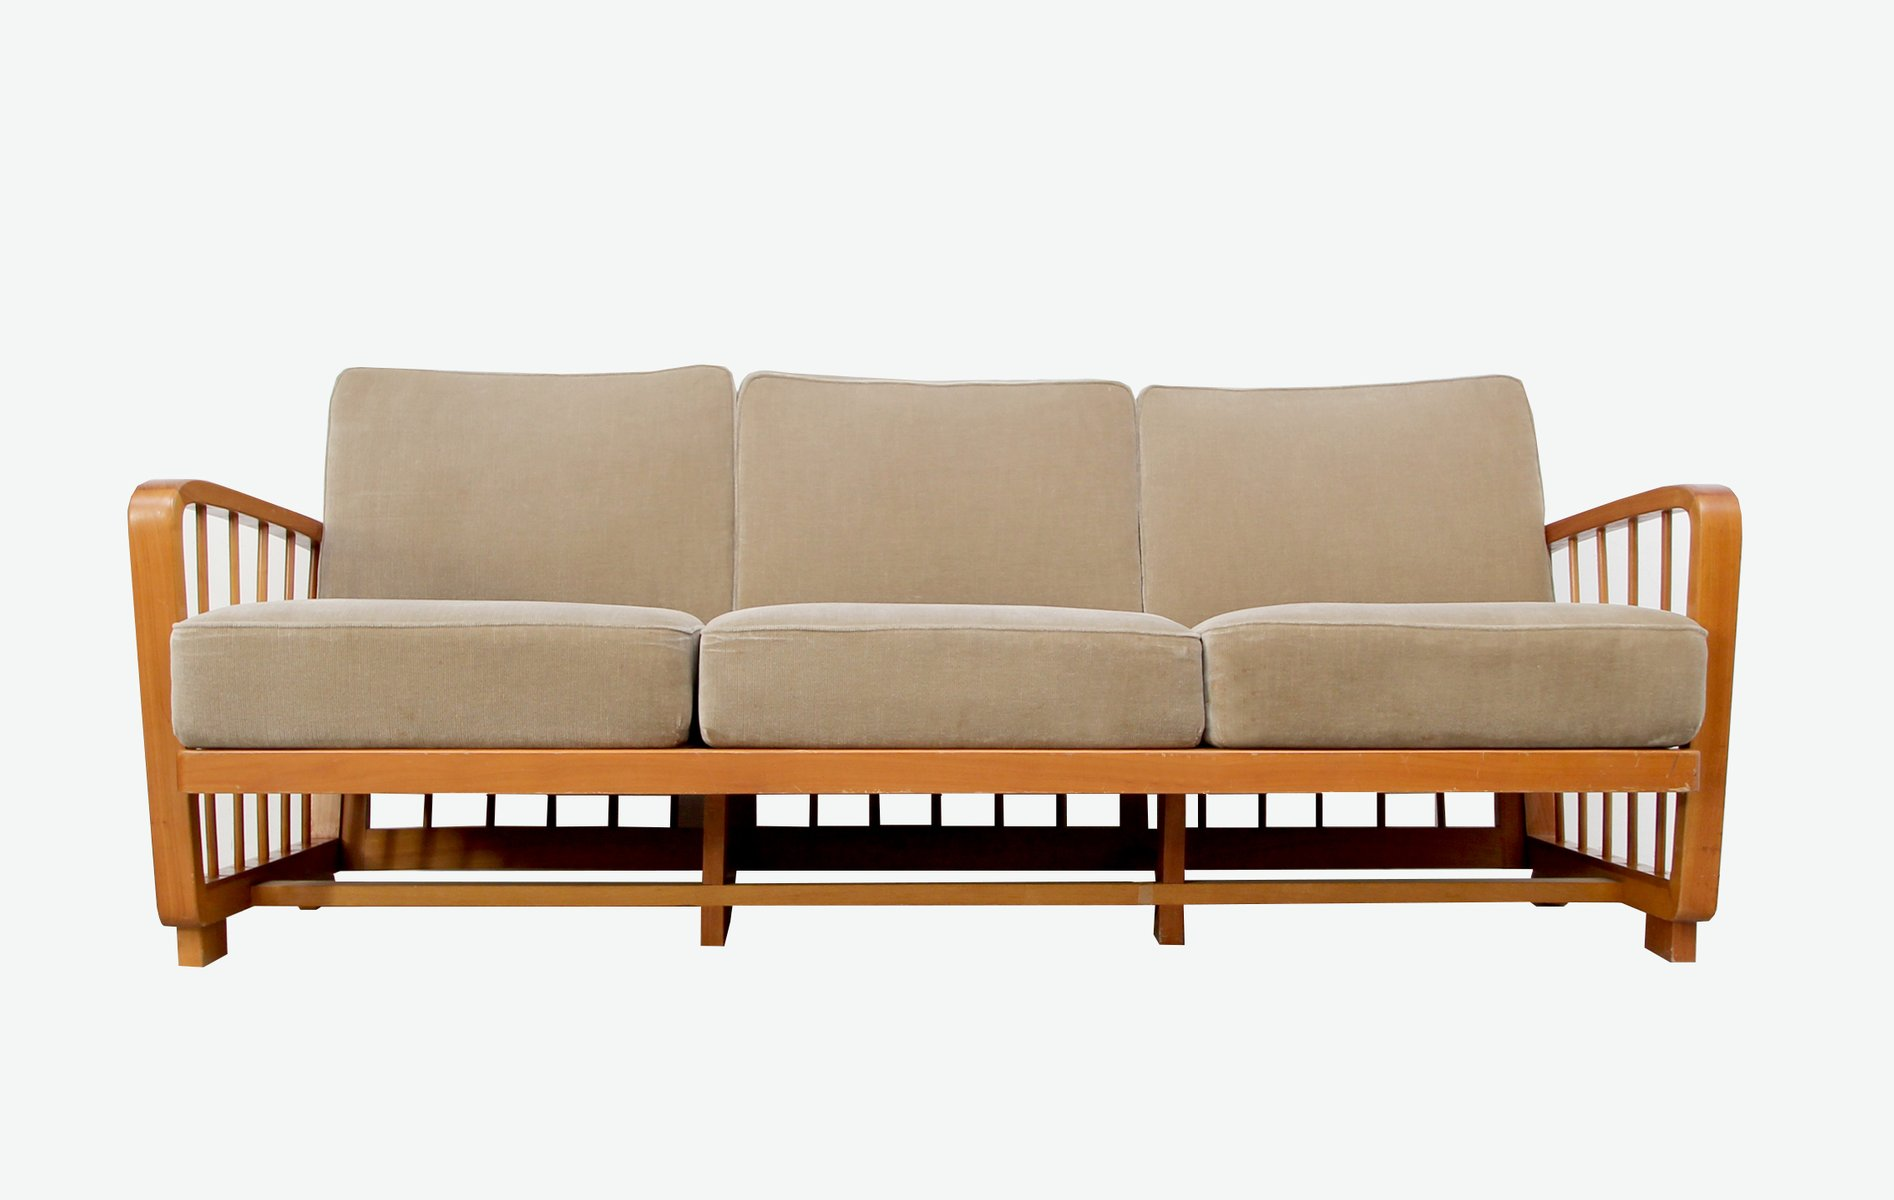 Vintage Sofa In Cherry 1950s For Sale At Pamono